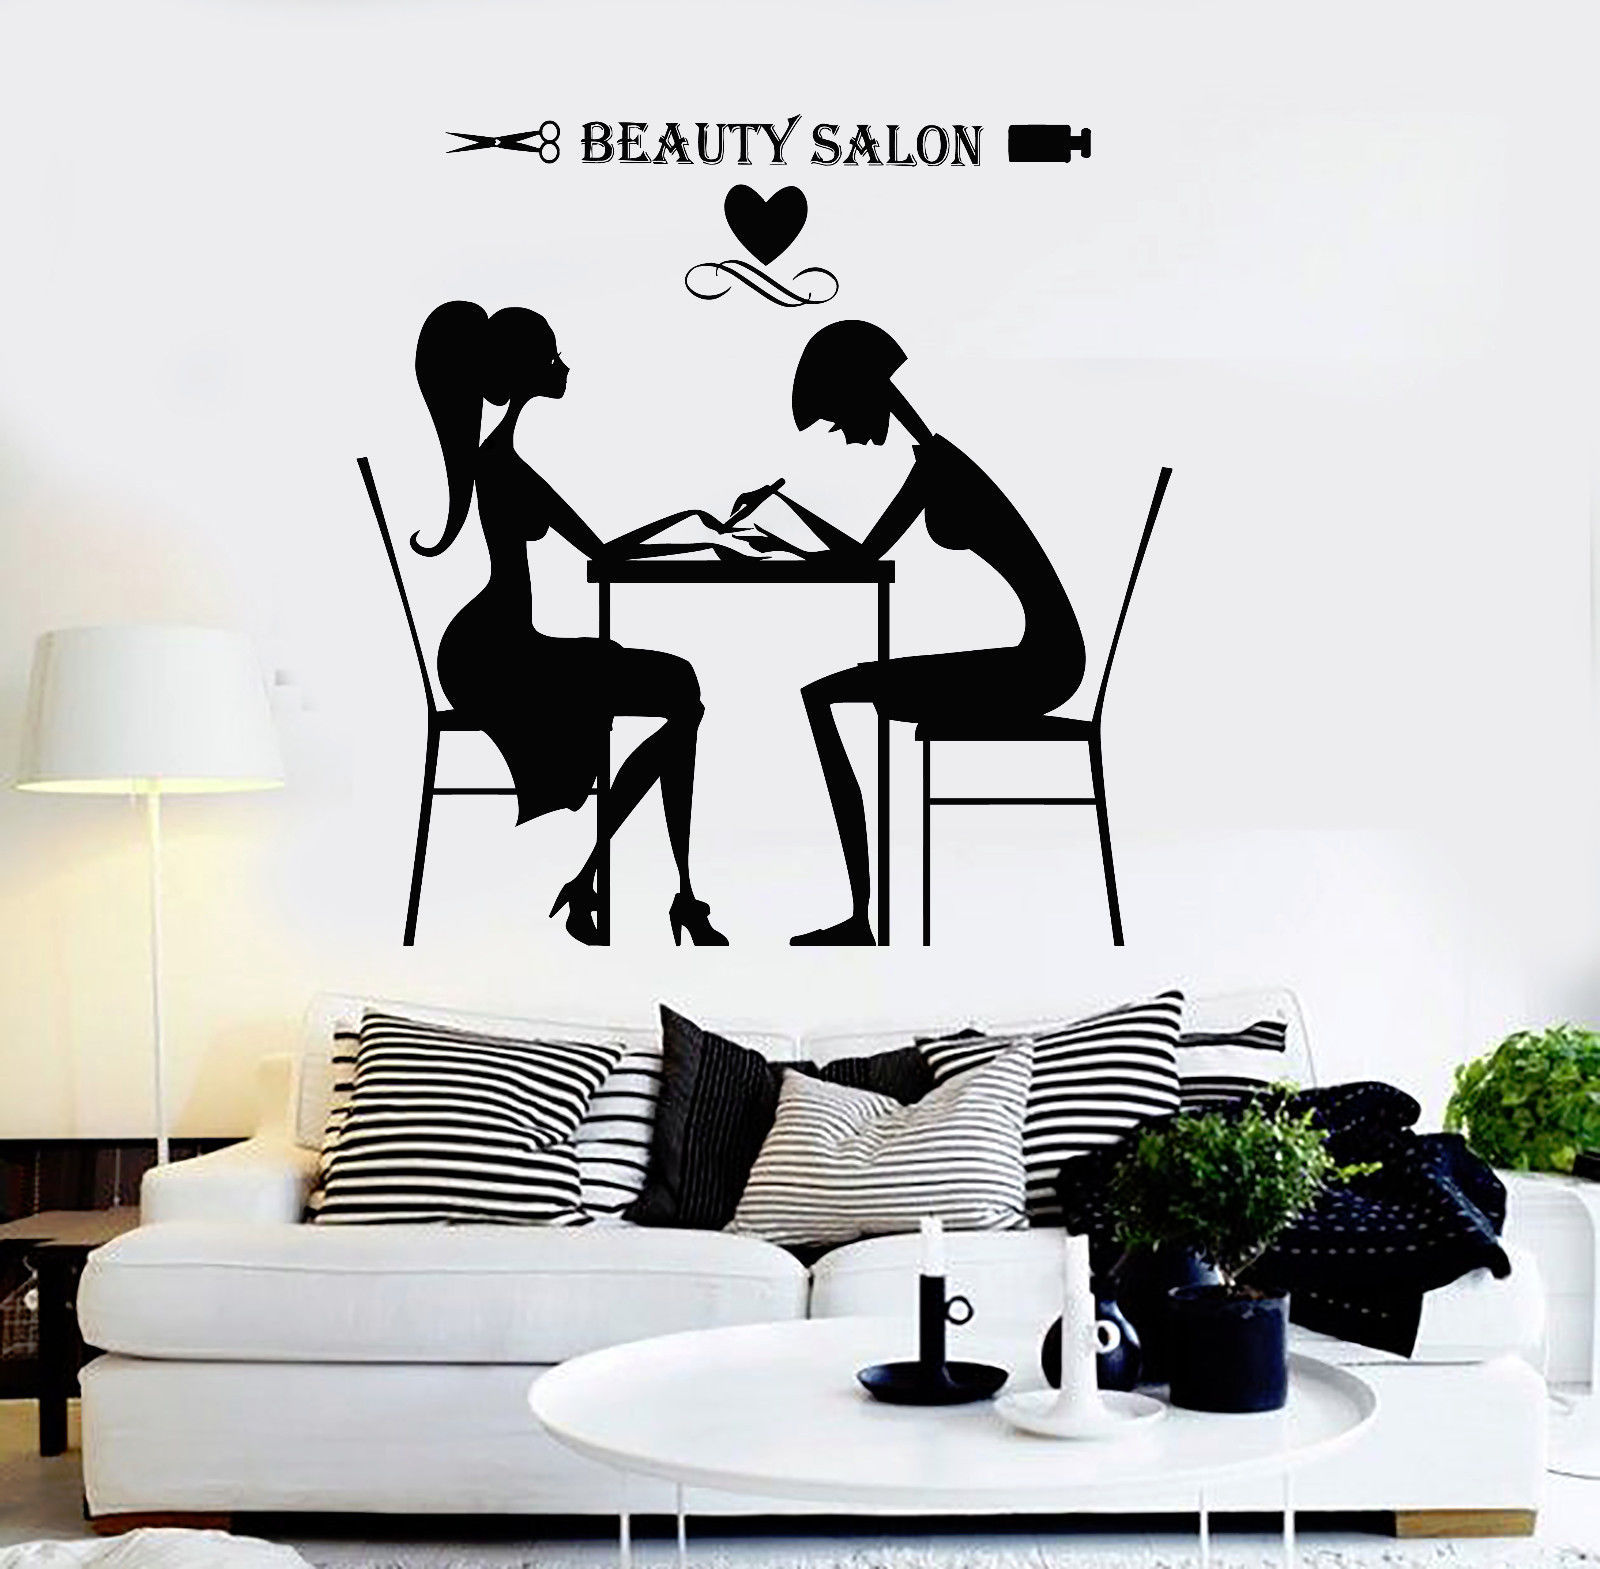 vinyl wall decal beauty salon hair stylist nail spa. Black Bedroom Furniture Sets. Home Design Ideas